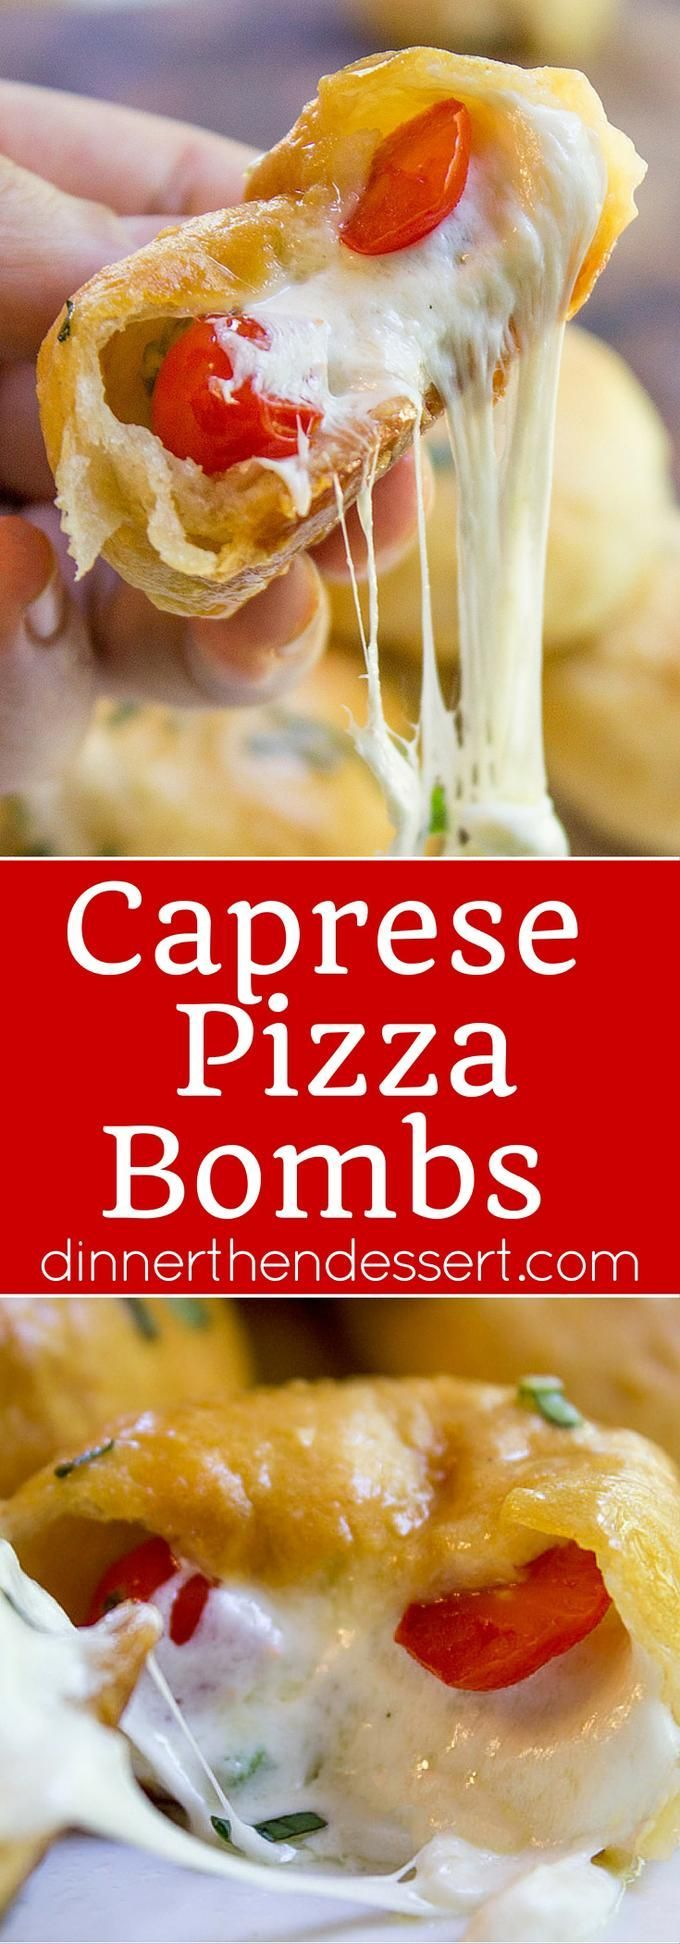 Caprese Pizza Bombs are a quick, fun treat or appetizer with fresh mozzarella, basil and cherry tomatoes. Plus the stretchy cheese factor is amazing. ad /stellacheese/